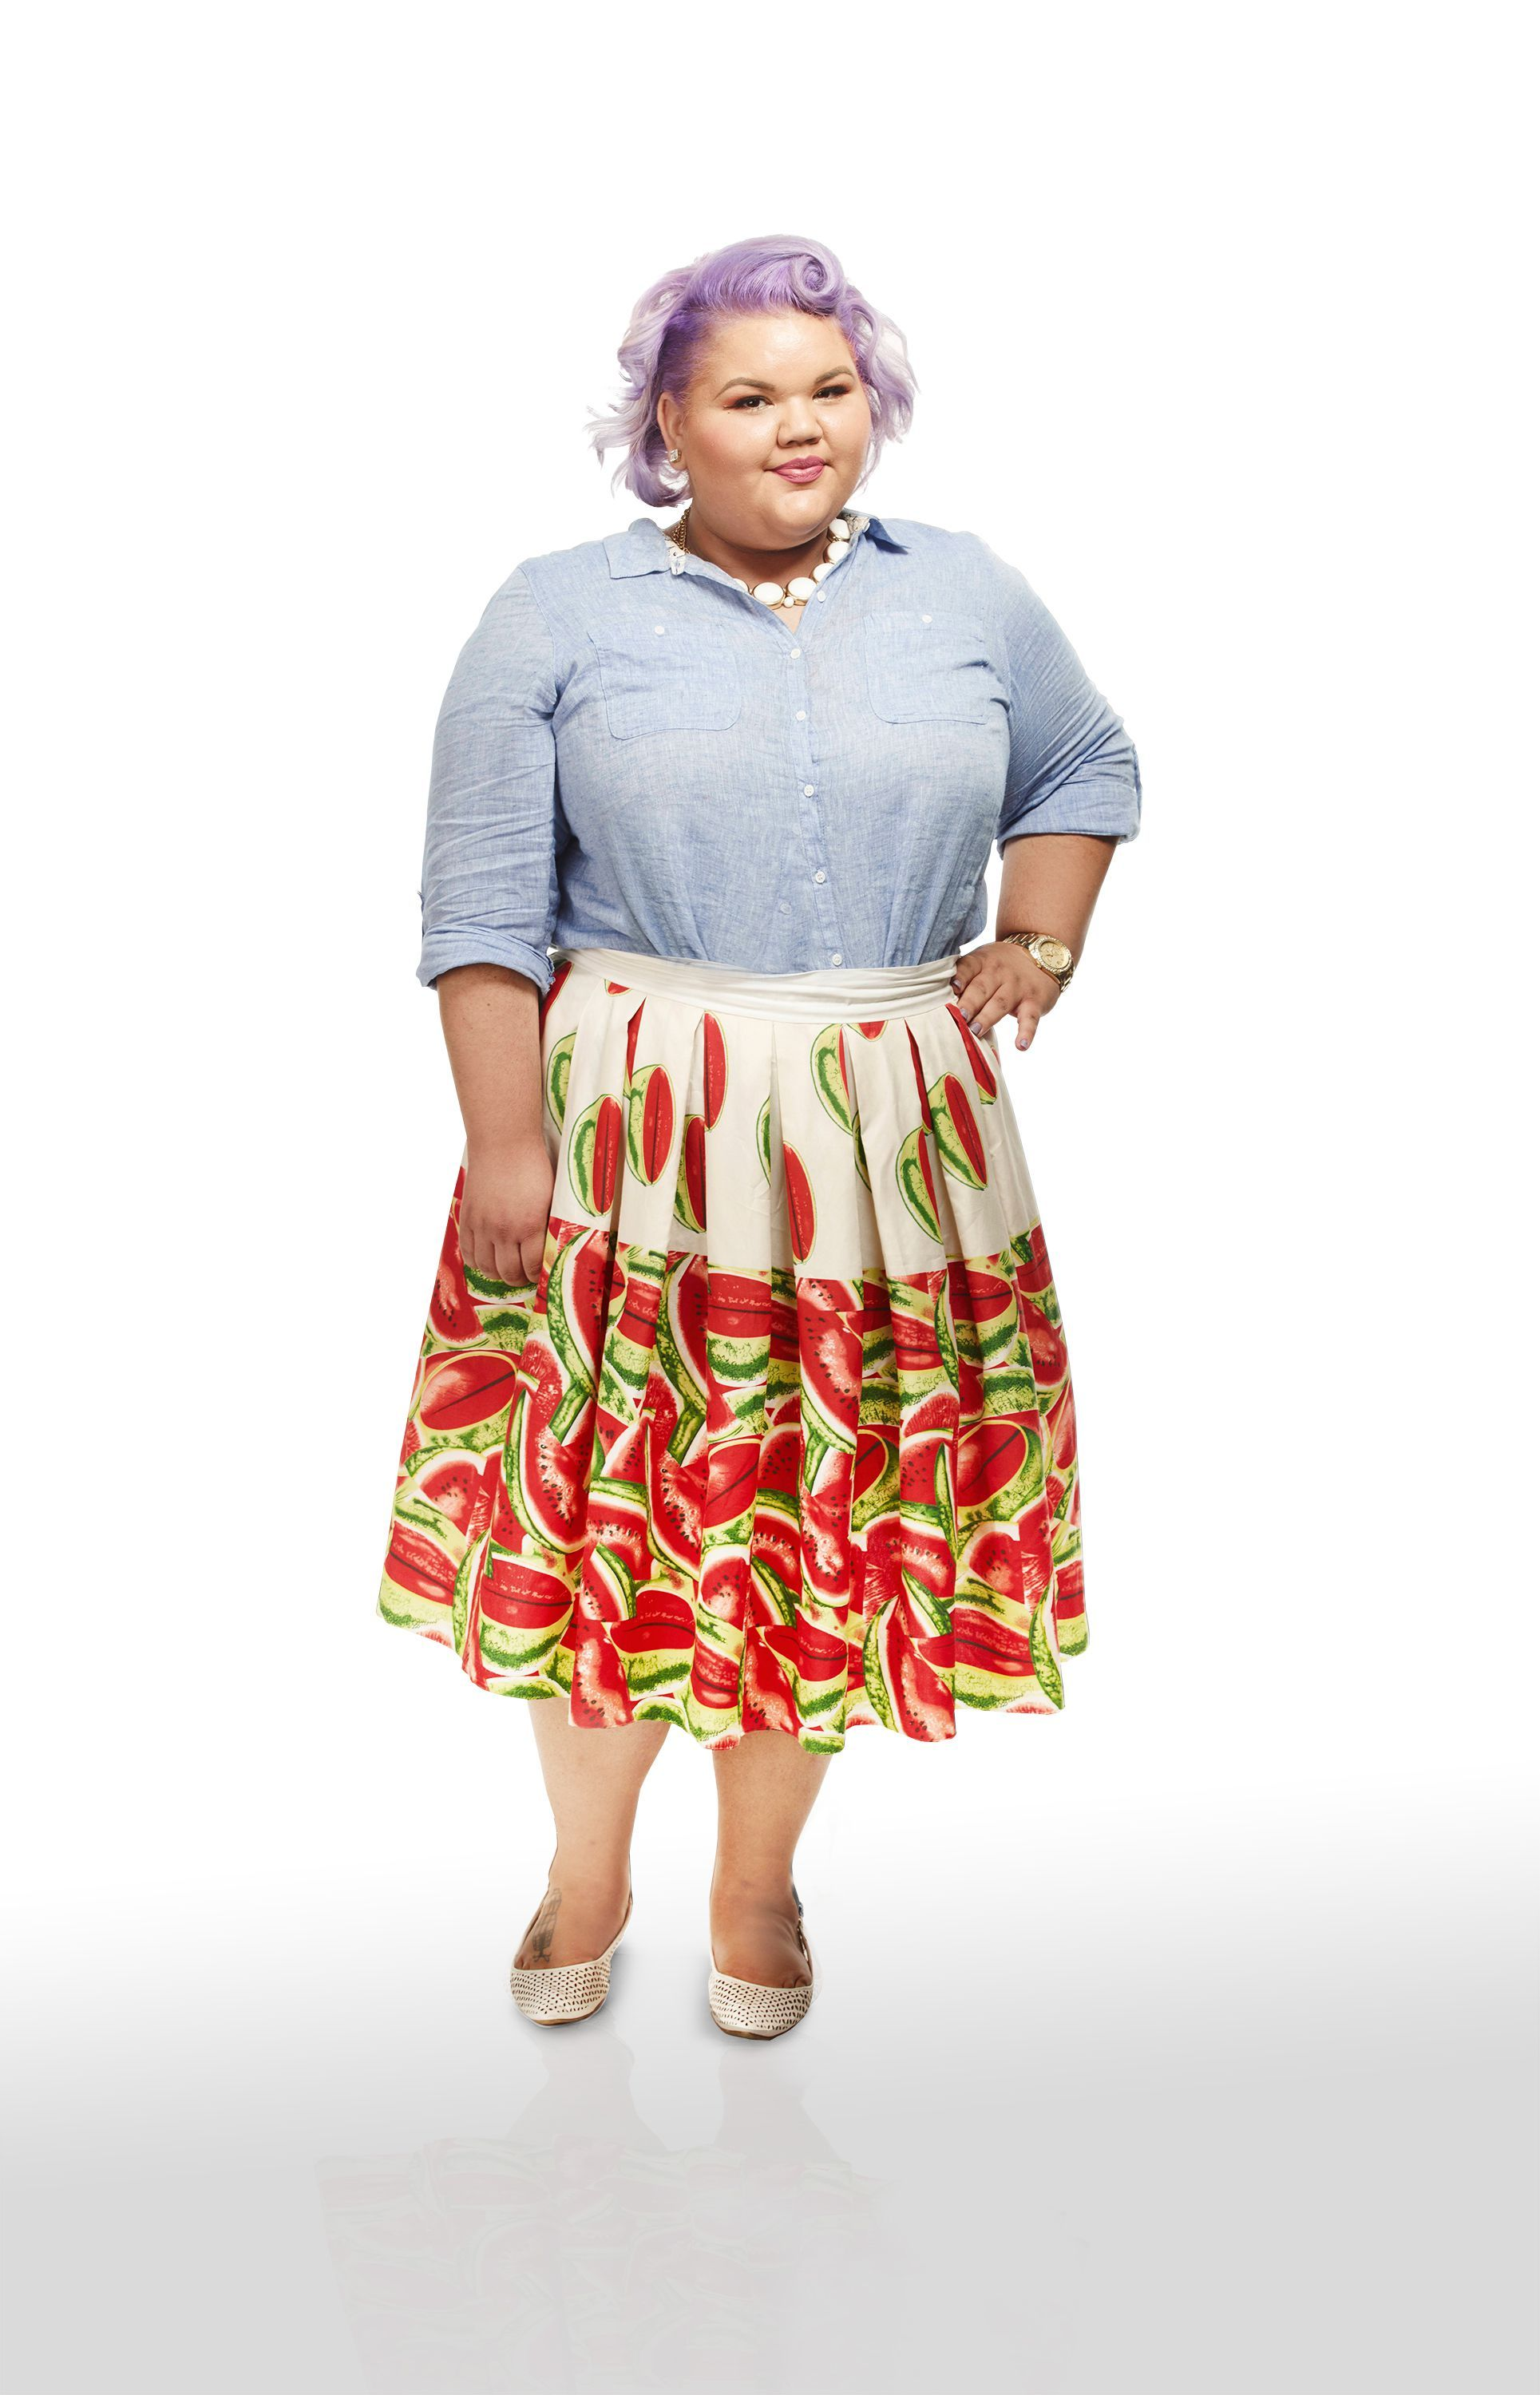 Plus Size Fashion Online 18 24 Google Search What Not To Wear